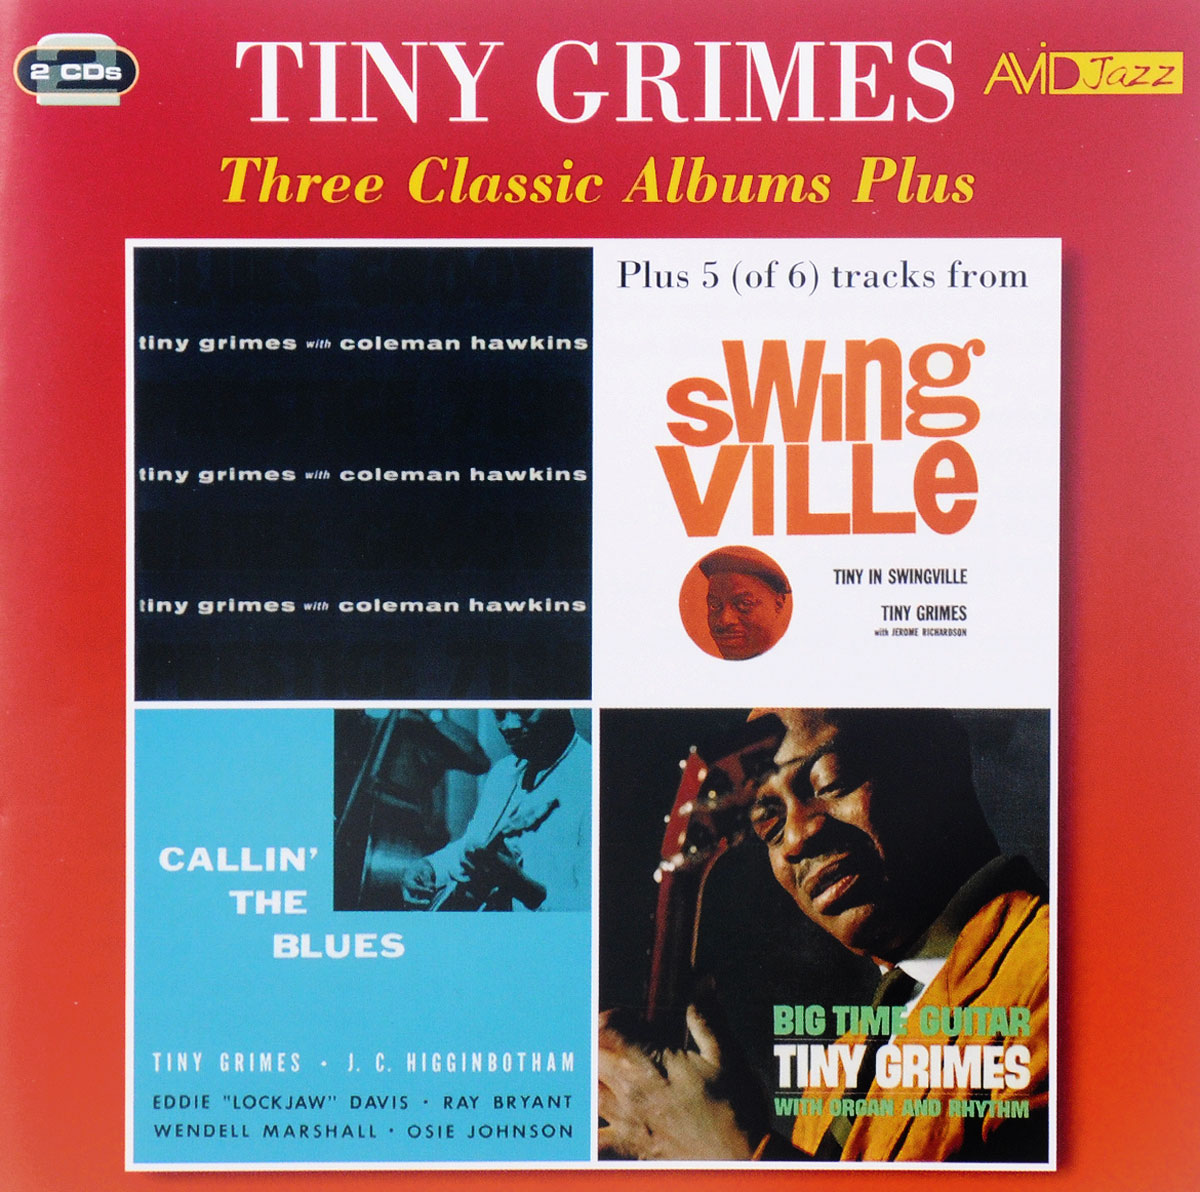 Тини Граймс Avid Jazz. Tiny Grimes. Three Classic Albums (2 CD) avid dolby surround tools